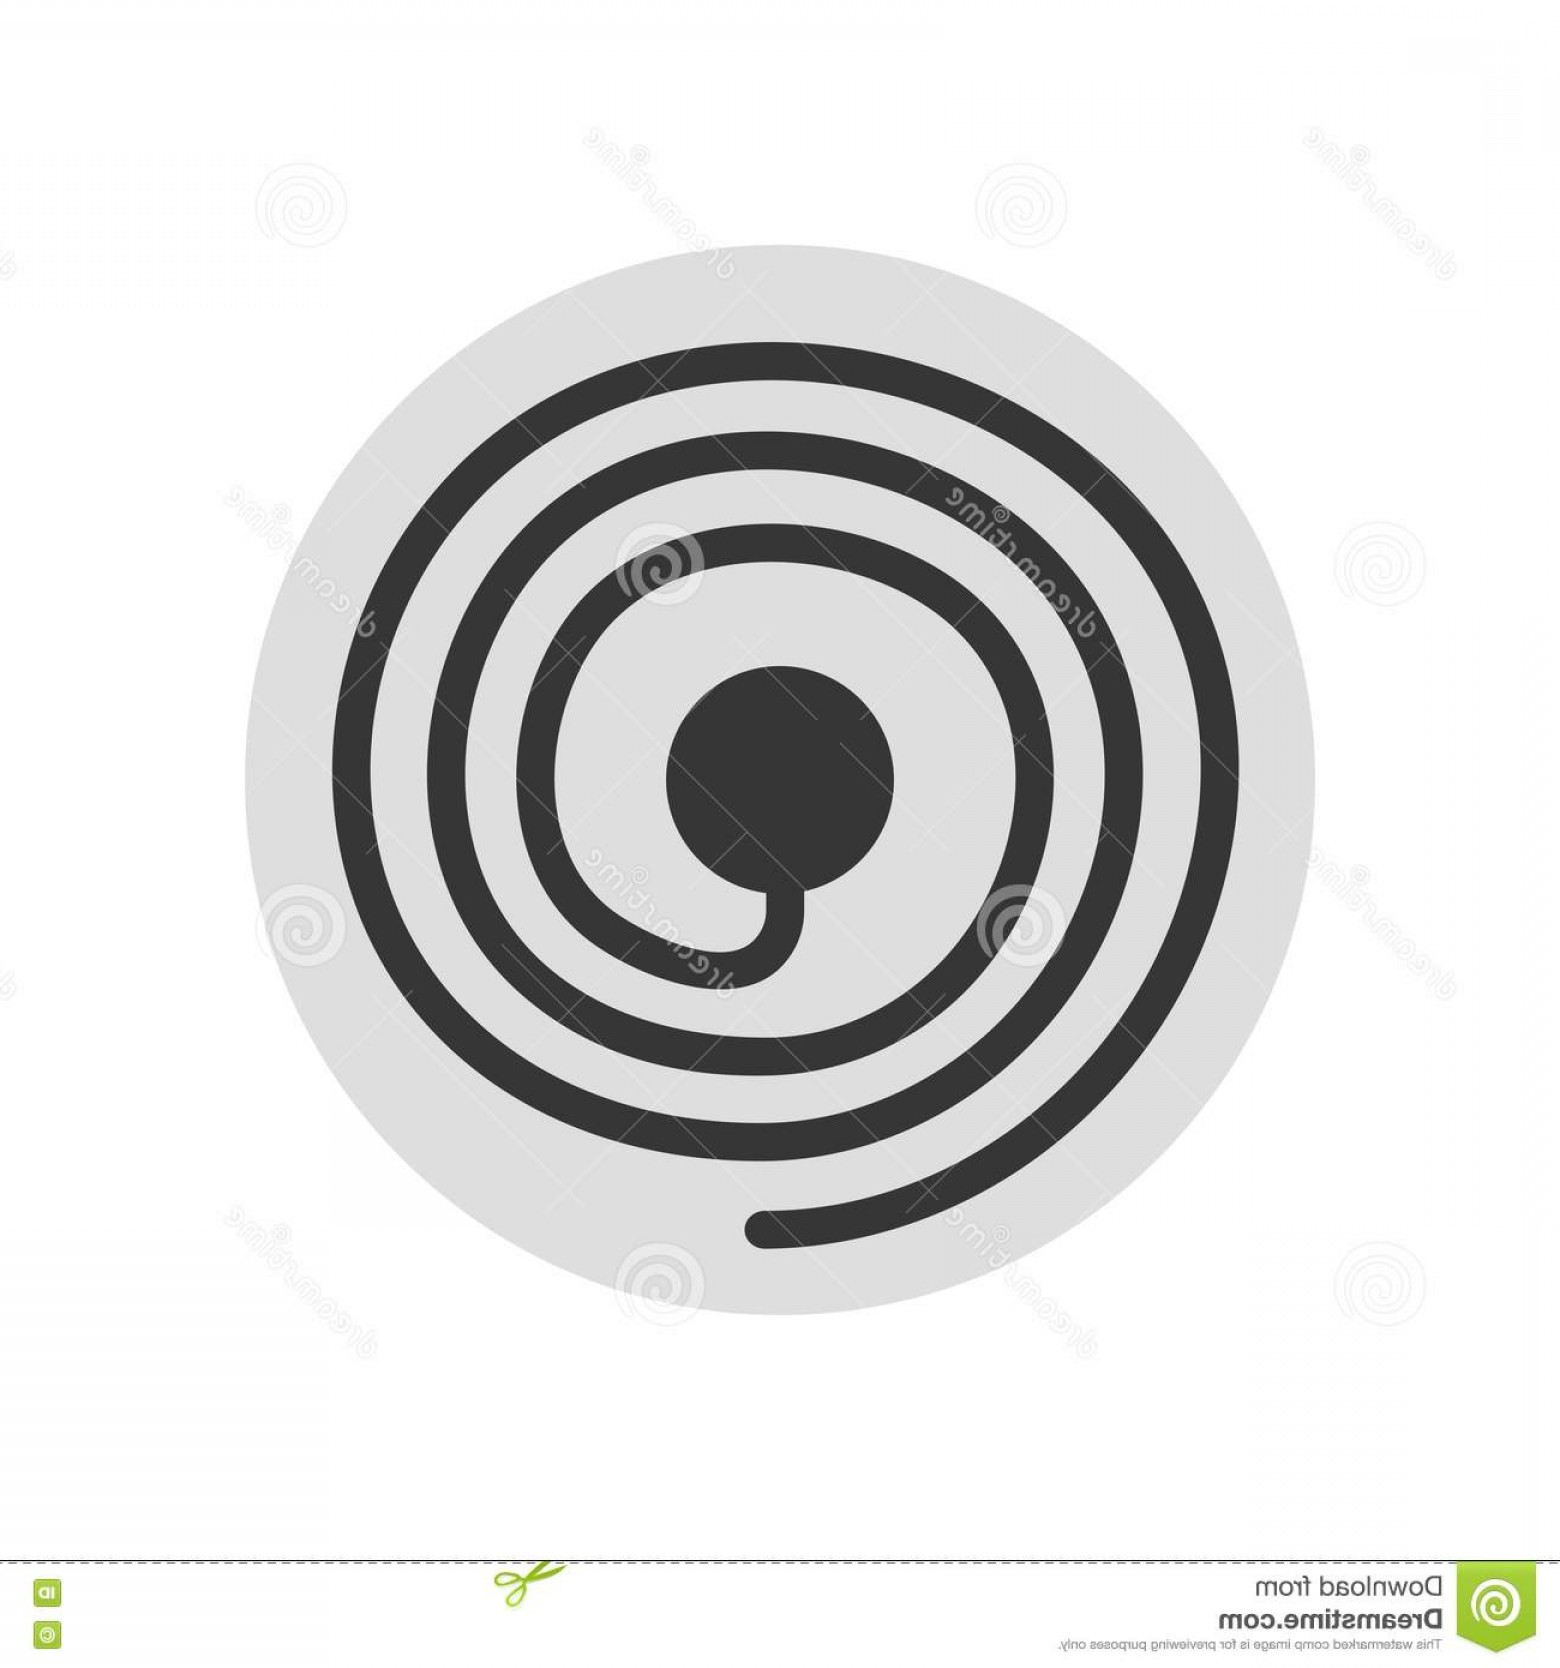 Radio Frequency Vector: Radio Frequency Identification Rfid Tag Icon Vector Illustration Image